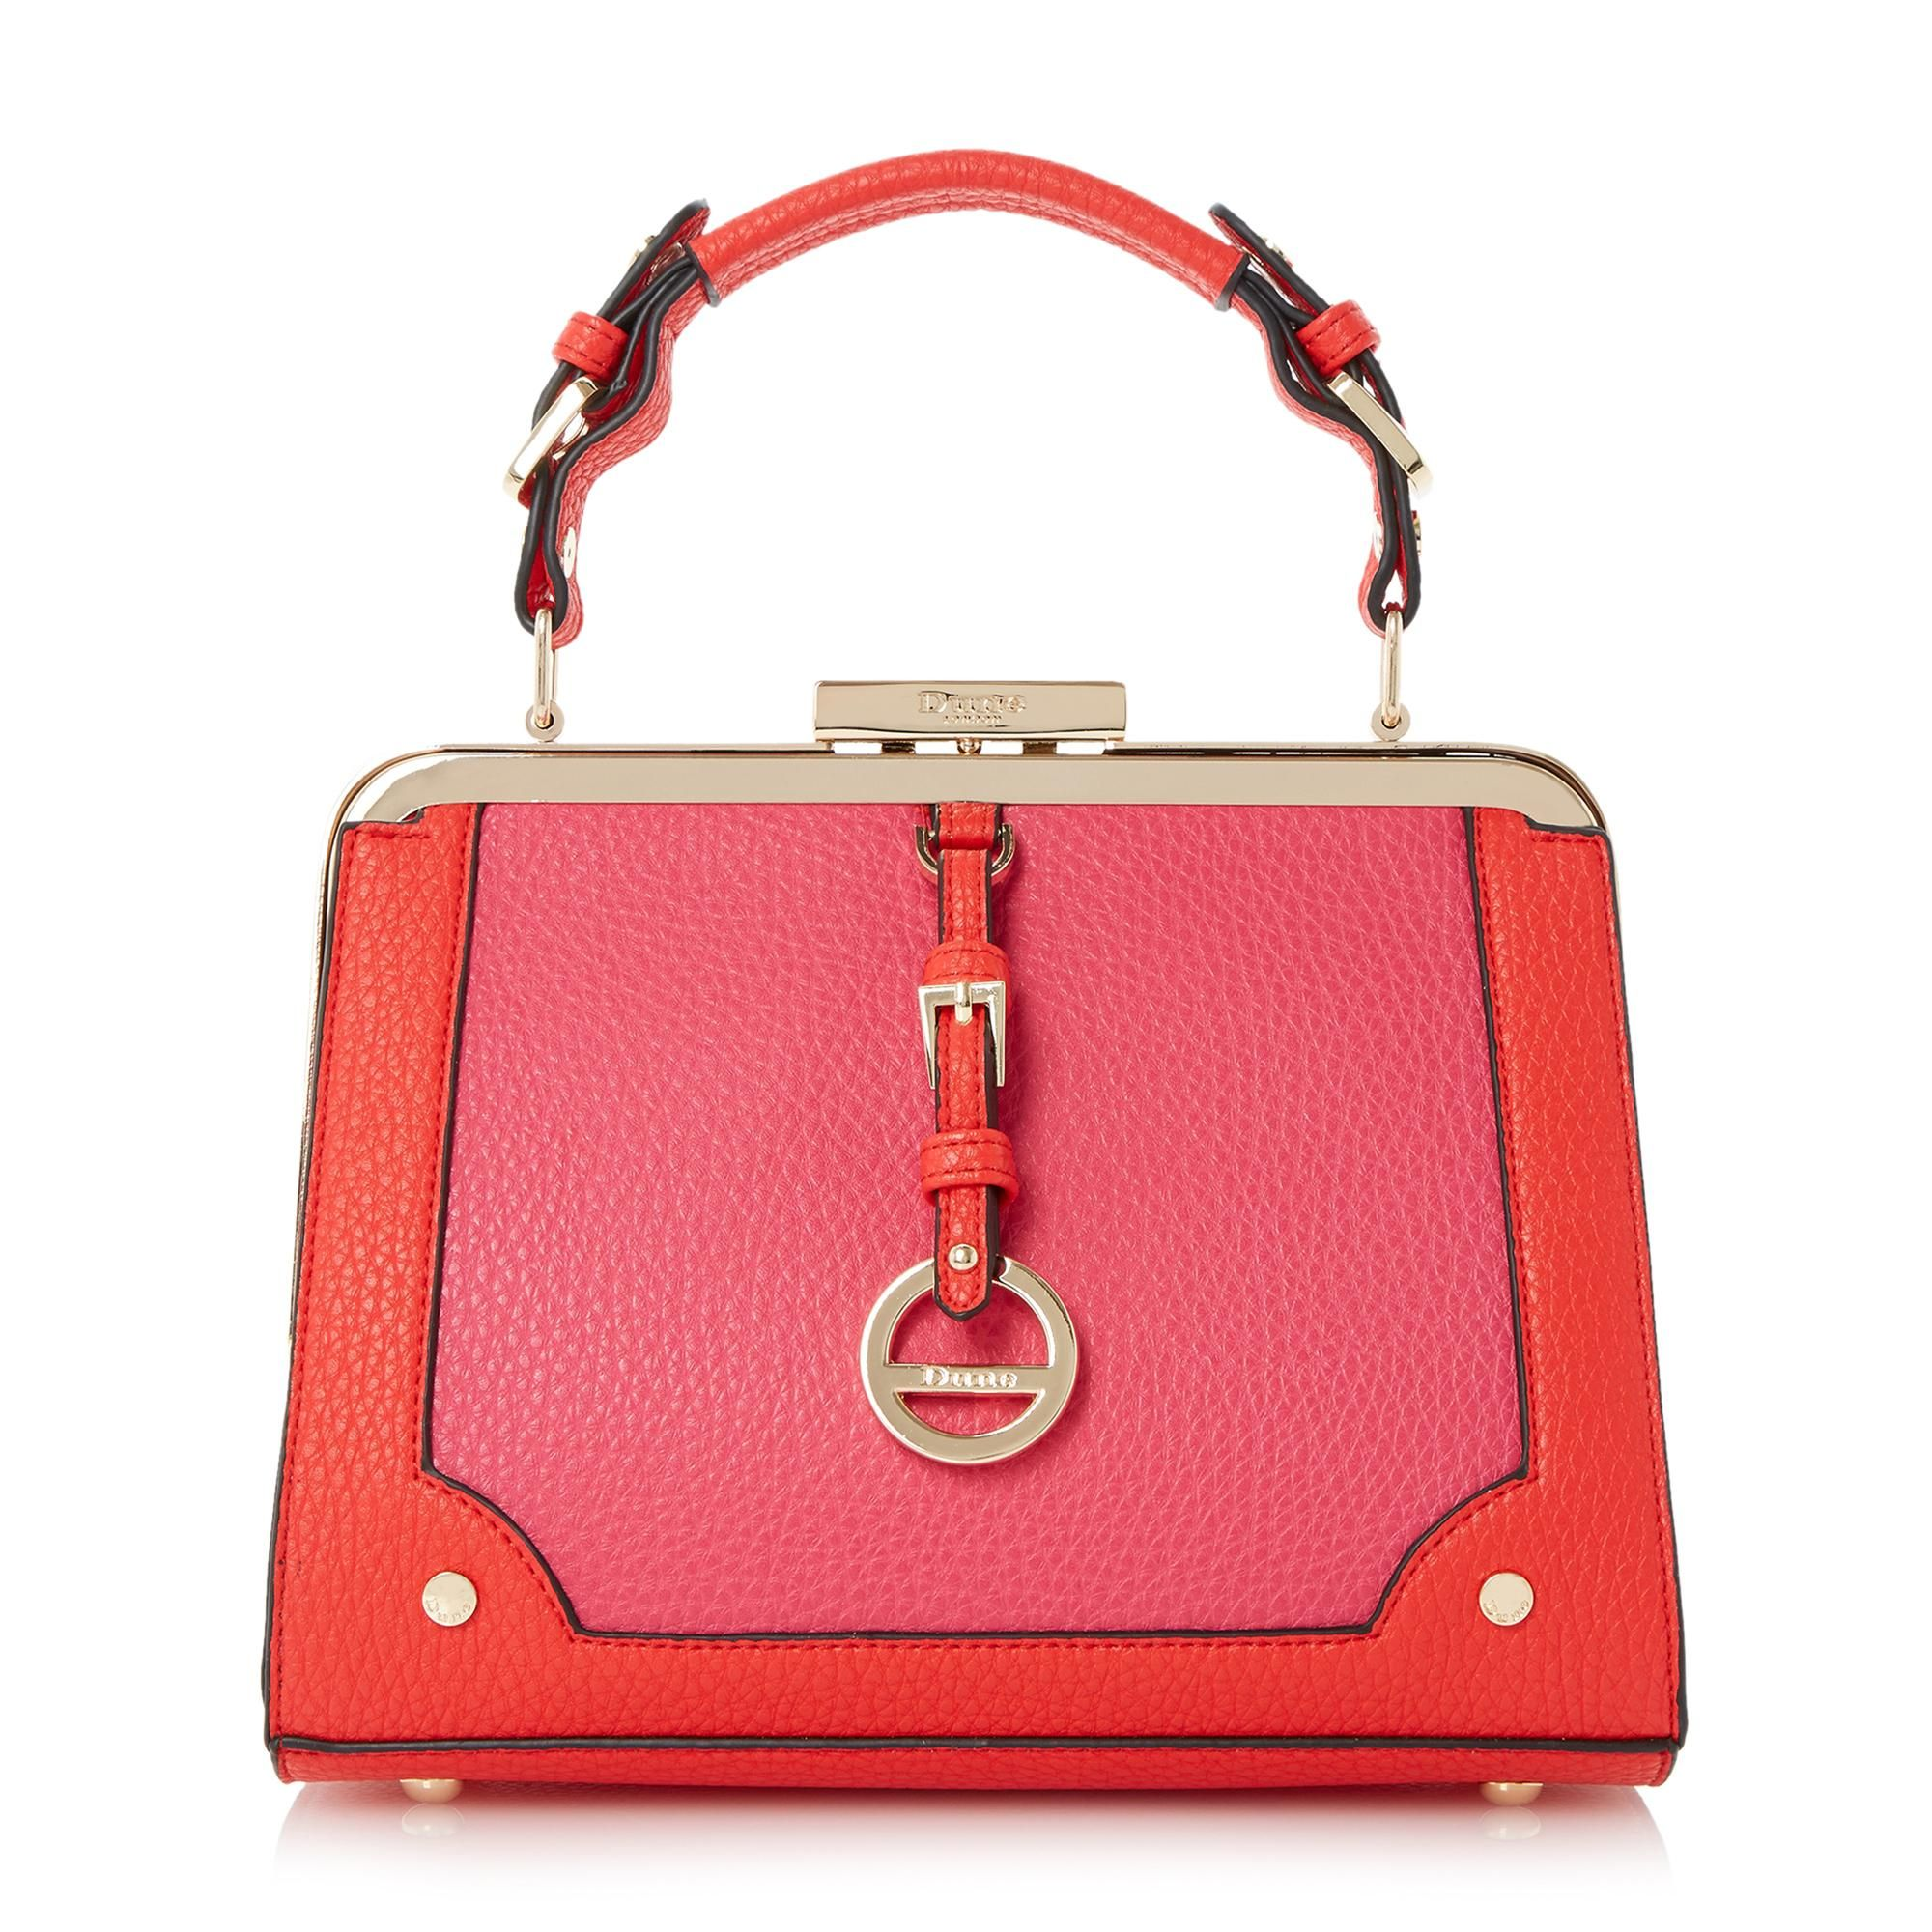 Dune Accessories Dallas Colour Block Frame Top Handle Bag Red By London Dunelondon Dunebags Fashion Style